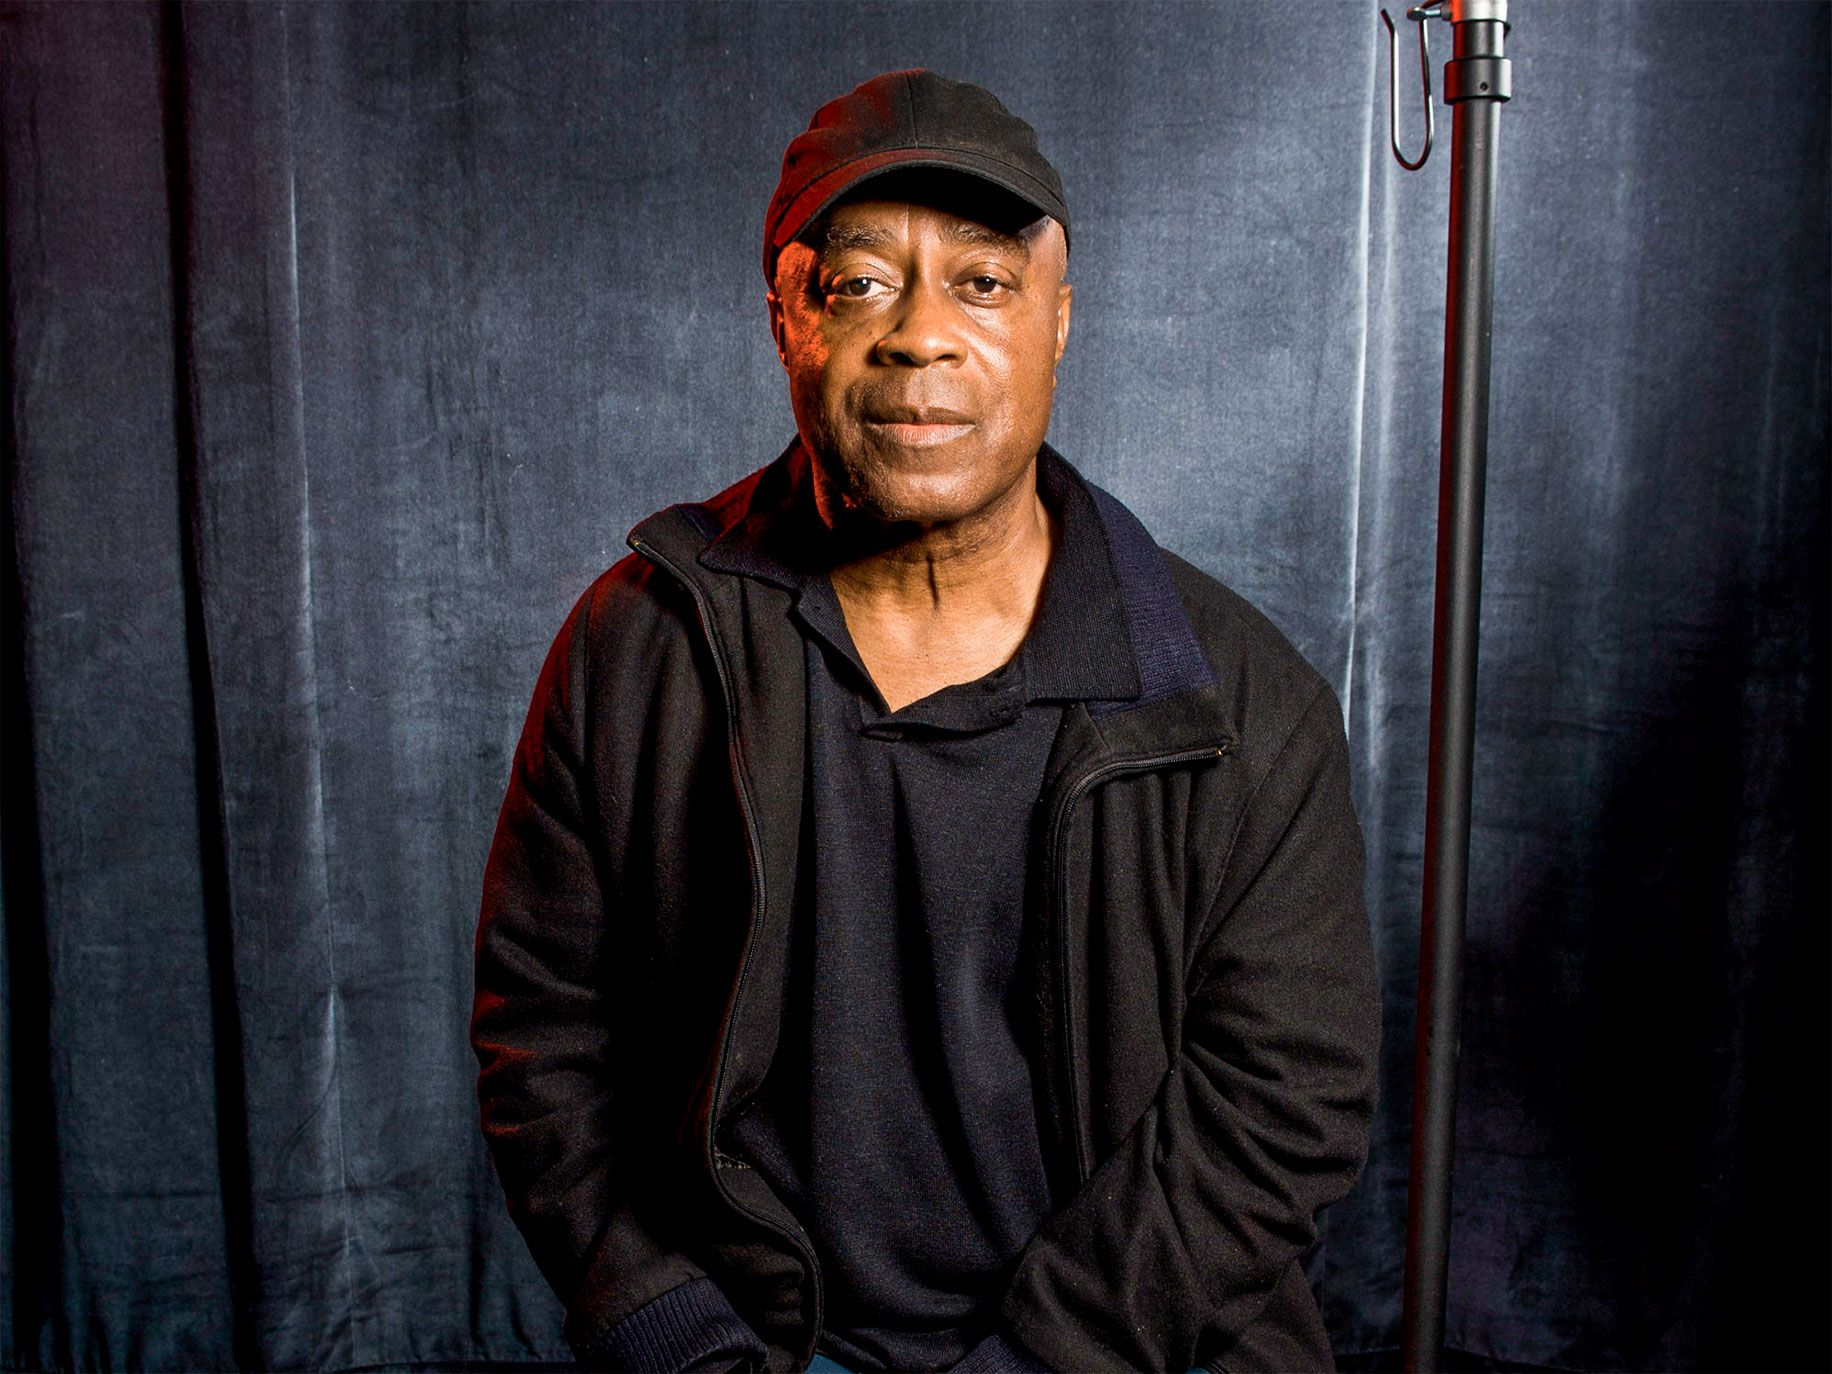 Charles Burnett, a great independent filmmaker, has chronicled L.A.'s African-American culture for 40 years.